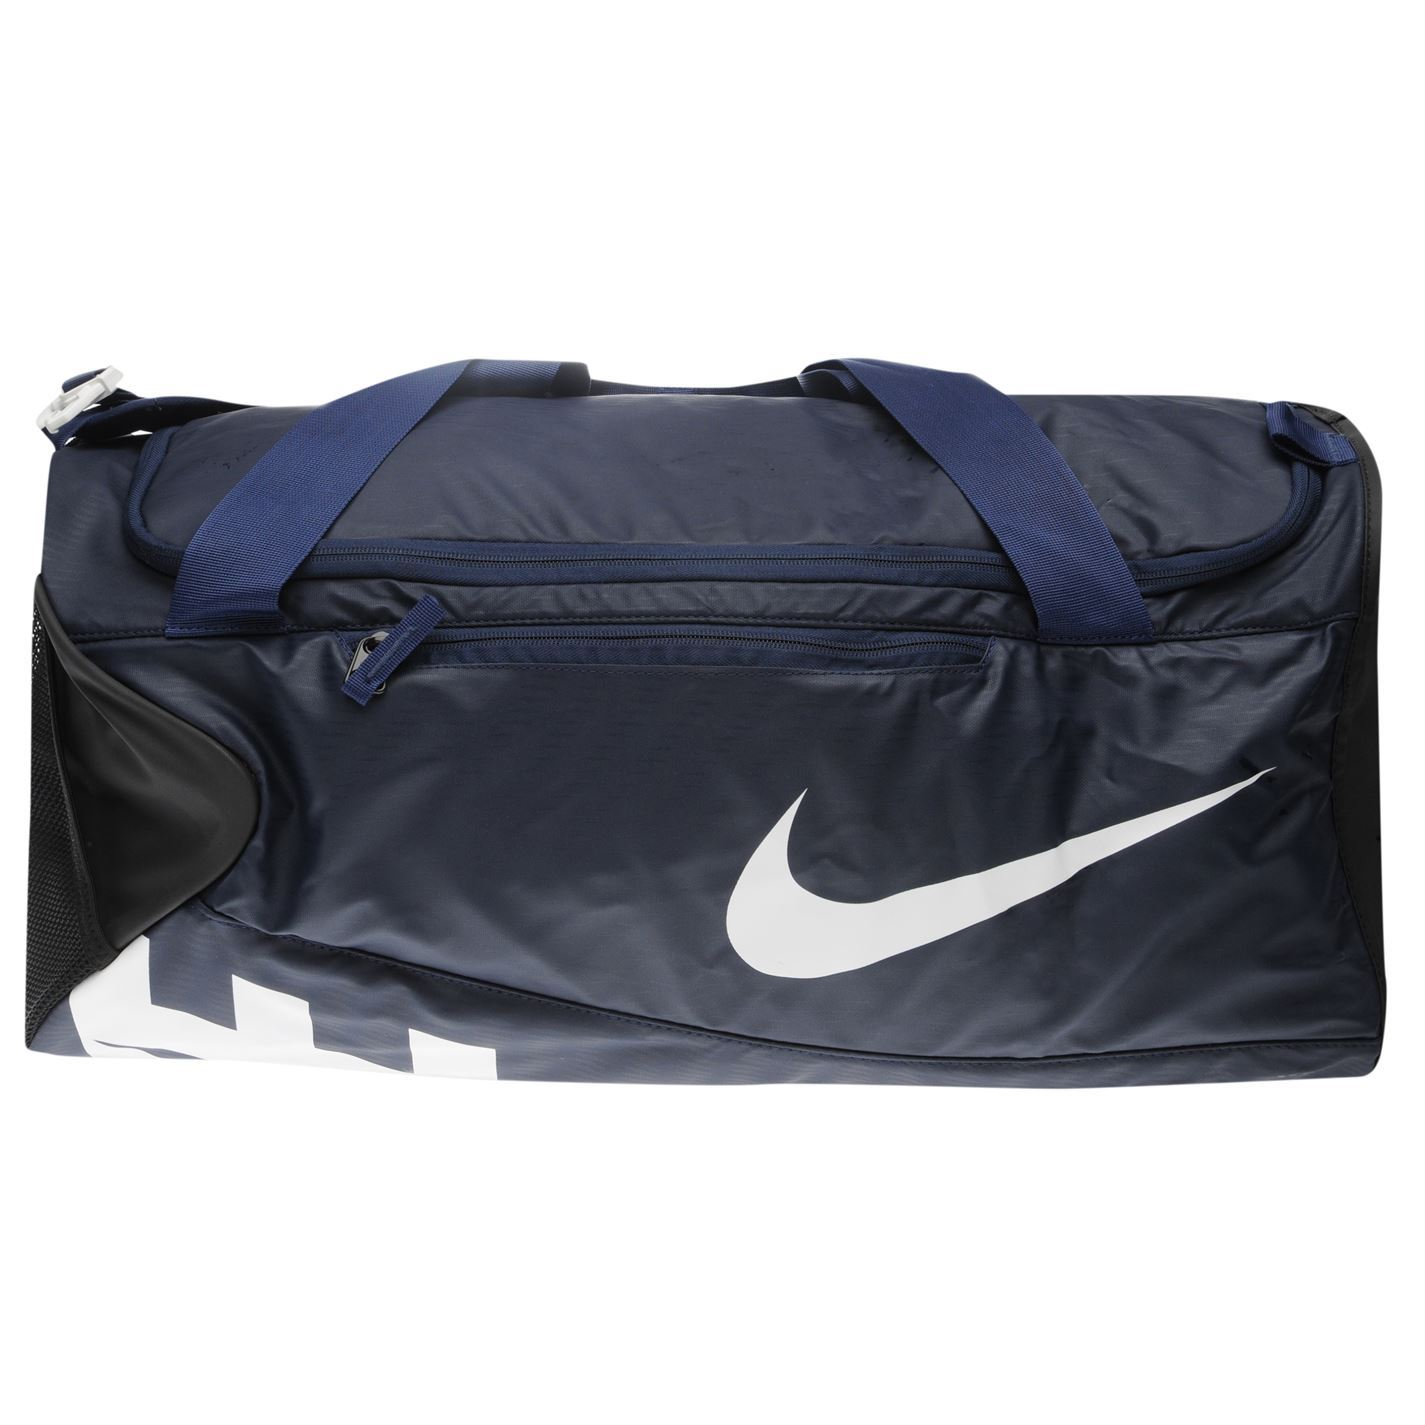 ... Nike Alpha Adapt Cross Body Duffel Bag Navy Blk Sports Gym Bag Holdall  Carryall 6ed52f78baf20